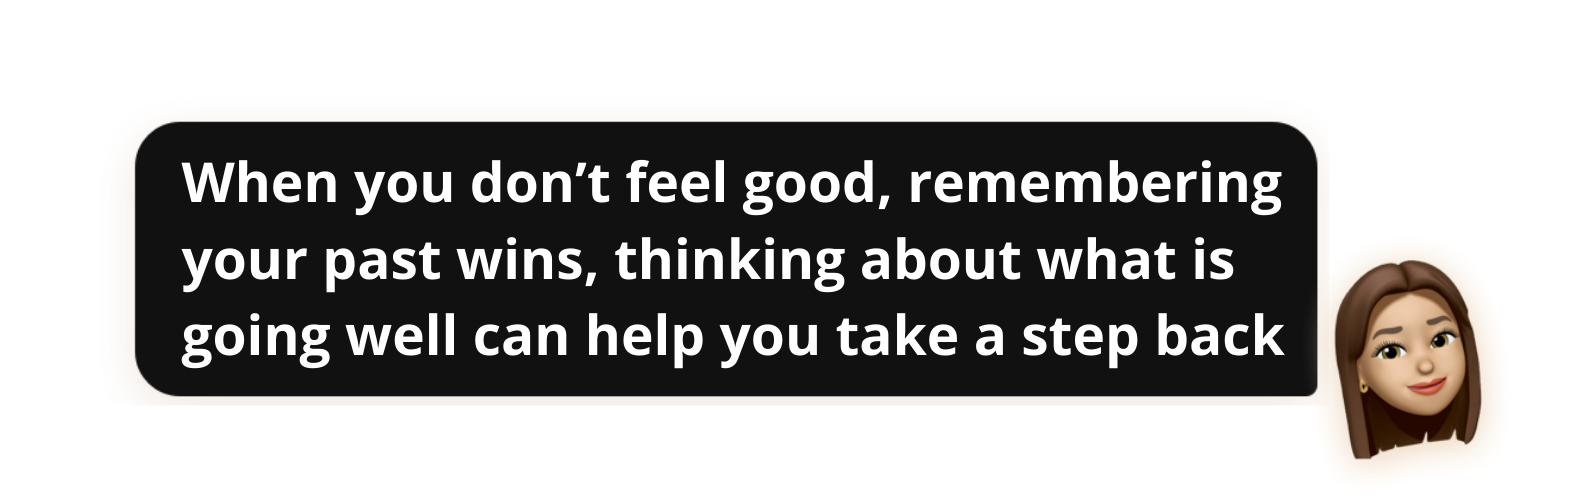 When you don't feel good, remembering your past wins, thinking about what is going well can help you take a step back - Popwork